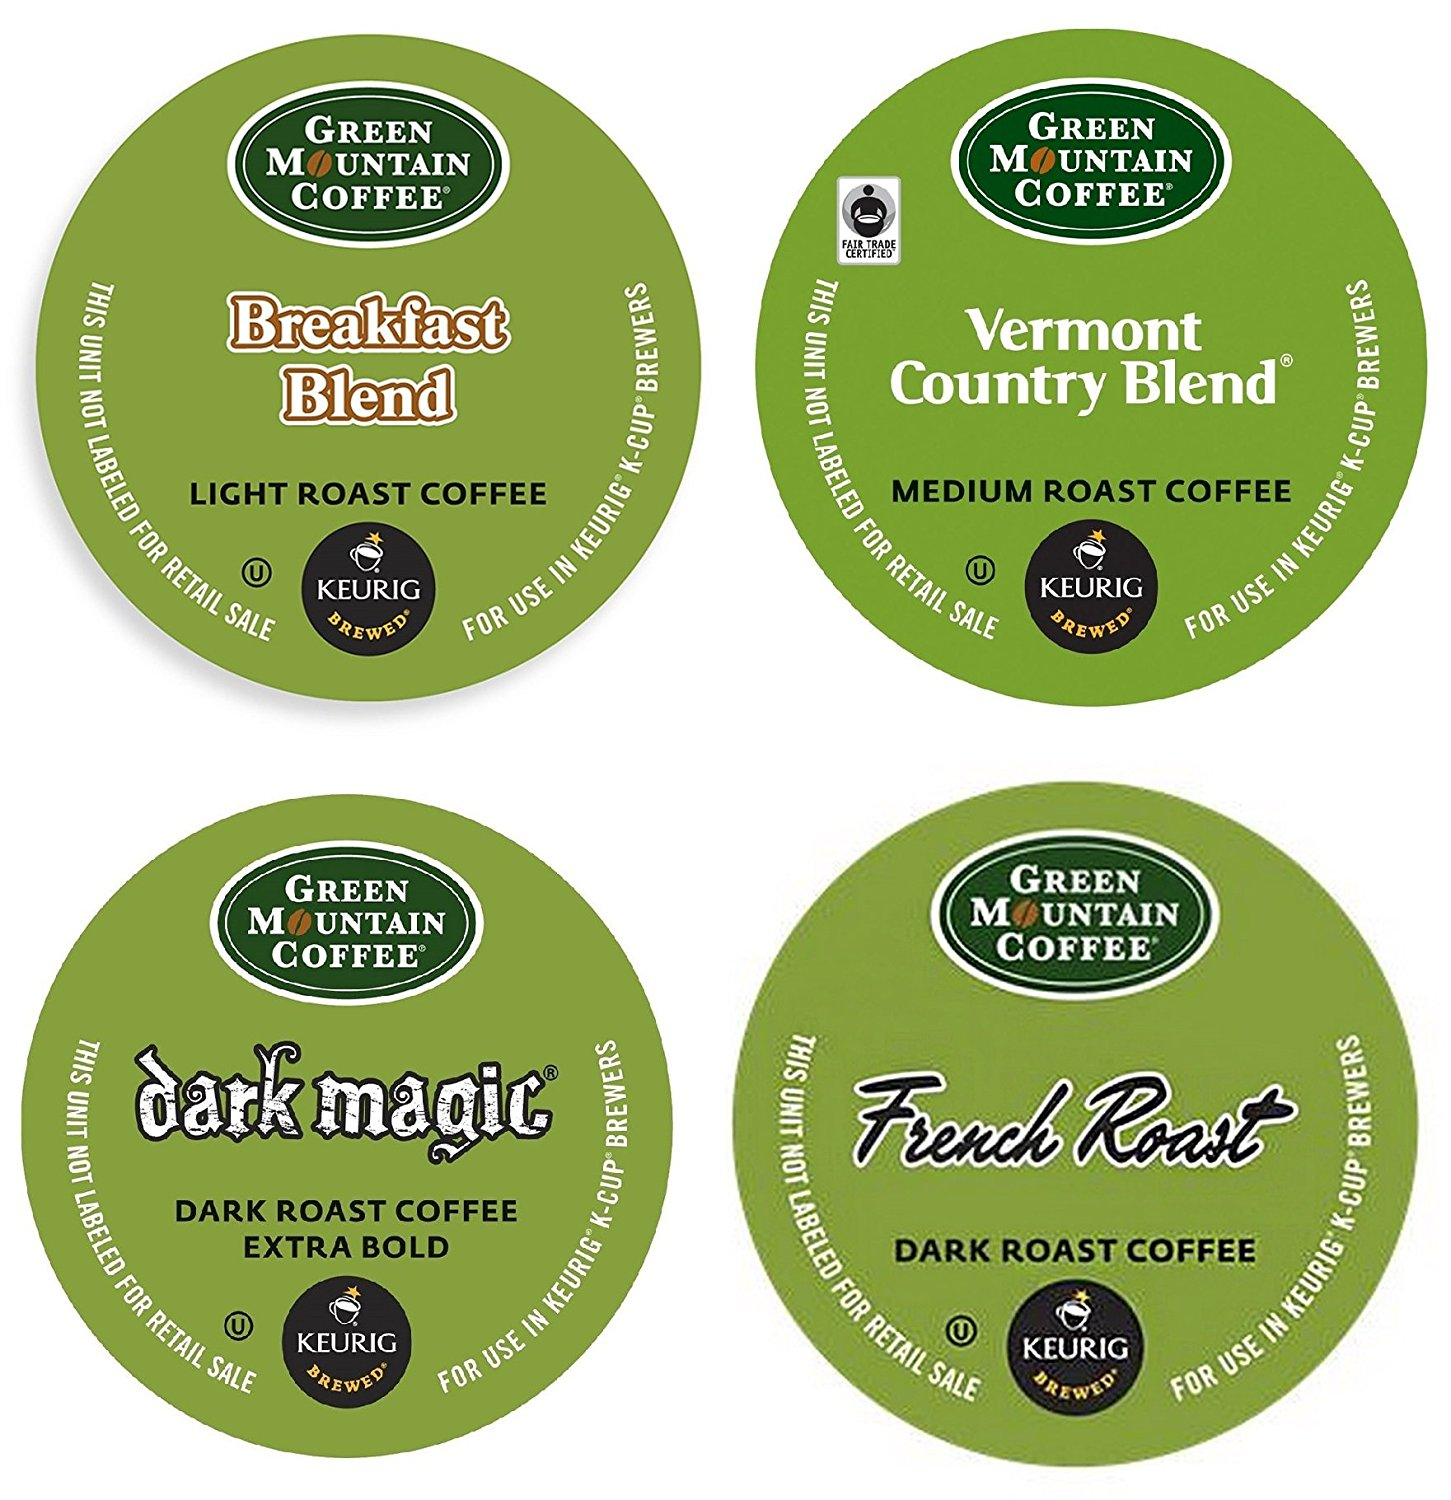 green mountain coffee roaster inc export 3 best coffee stocks to buy in 2016 and folgers now face a company that owns keurig green mountain, krispy kreme, peet's coffee stumptown coffee: roaster.